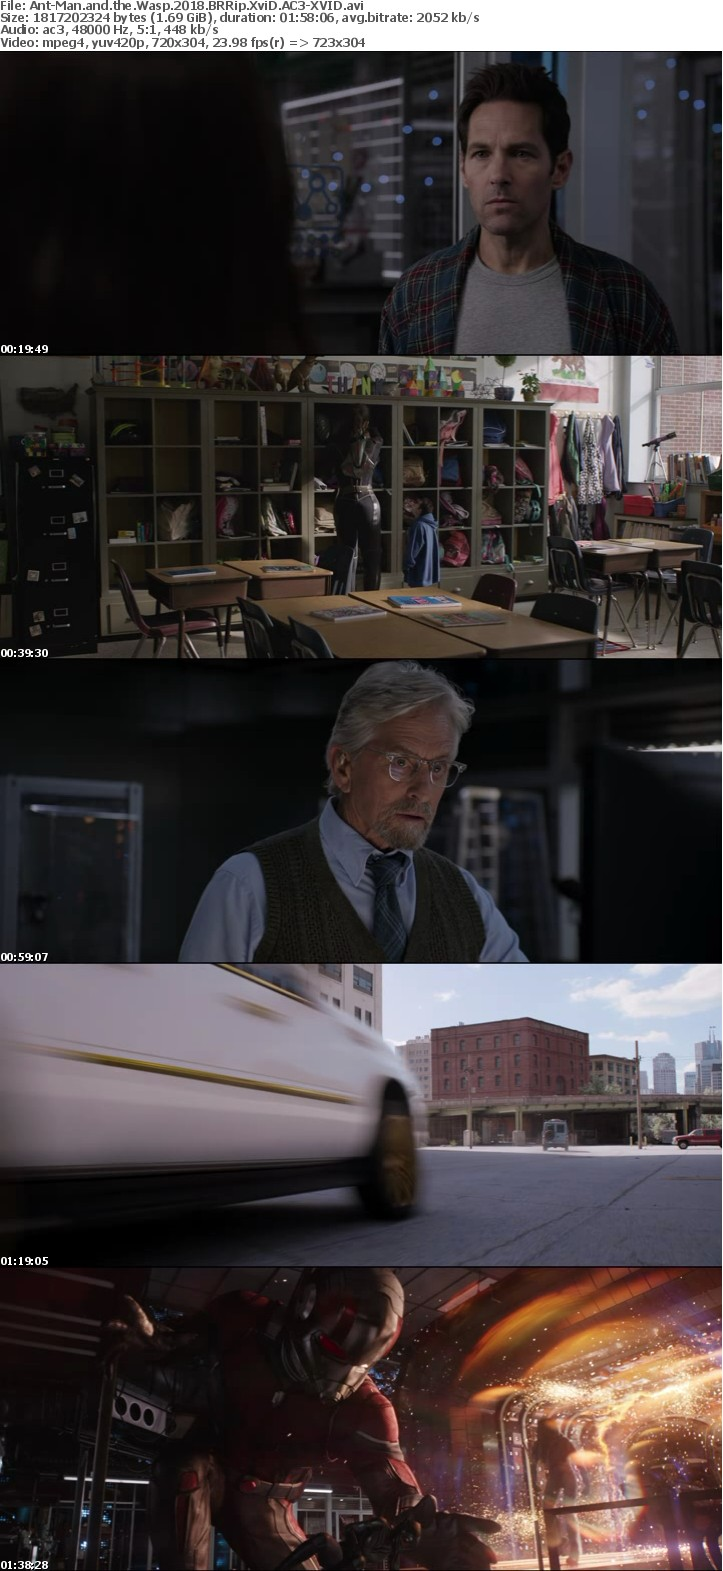 Ant-Man and the Wasp 2018 BRRip XviD AC3-XVID